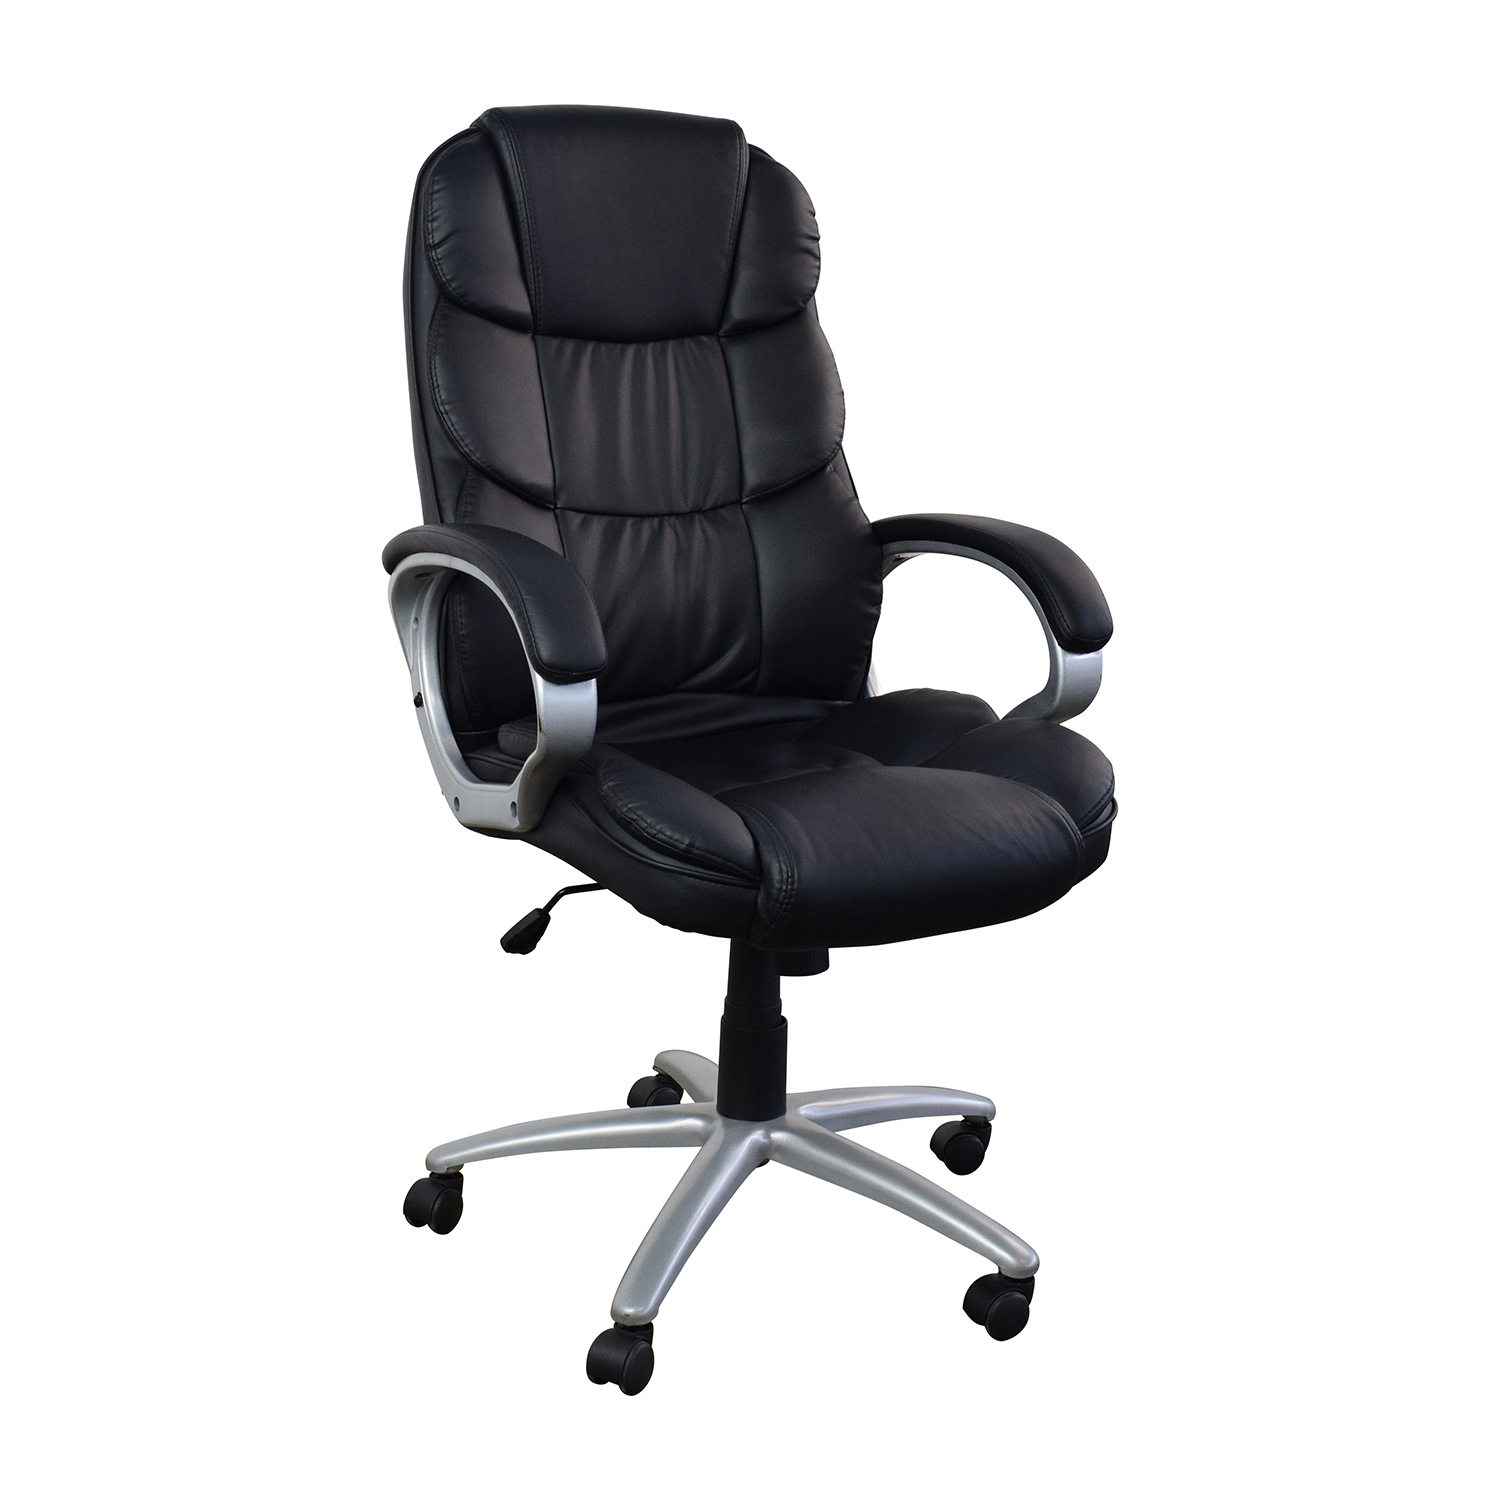 Black Leather Executive Office Chair price